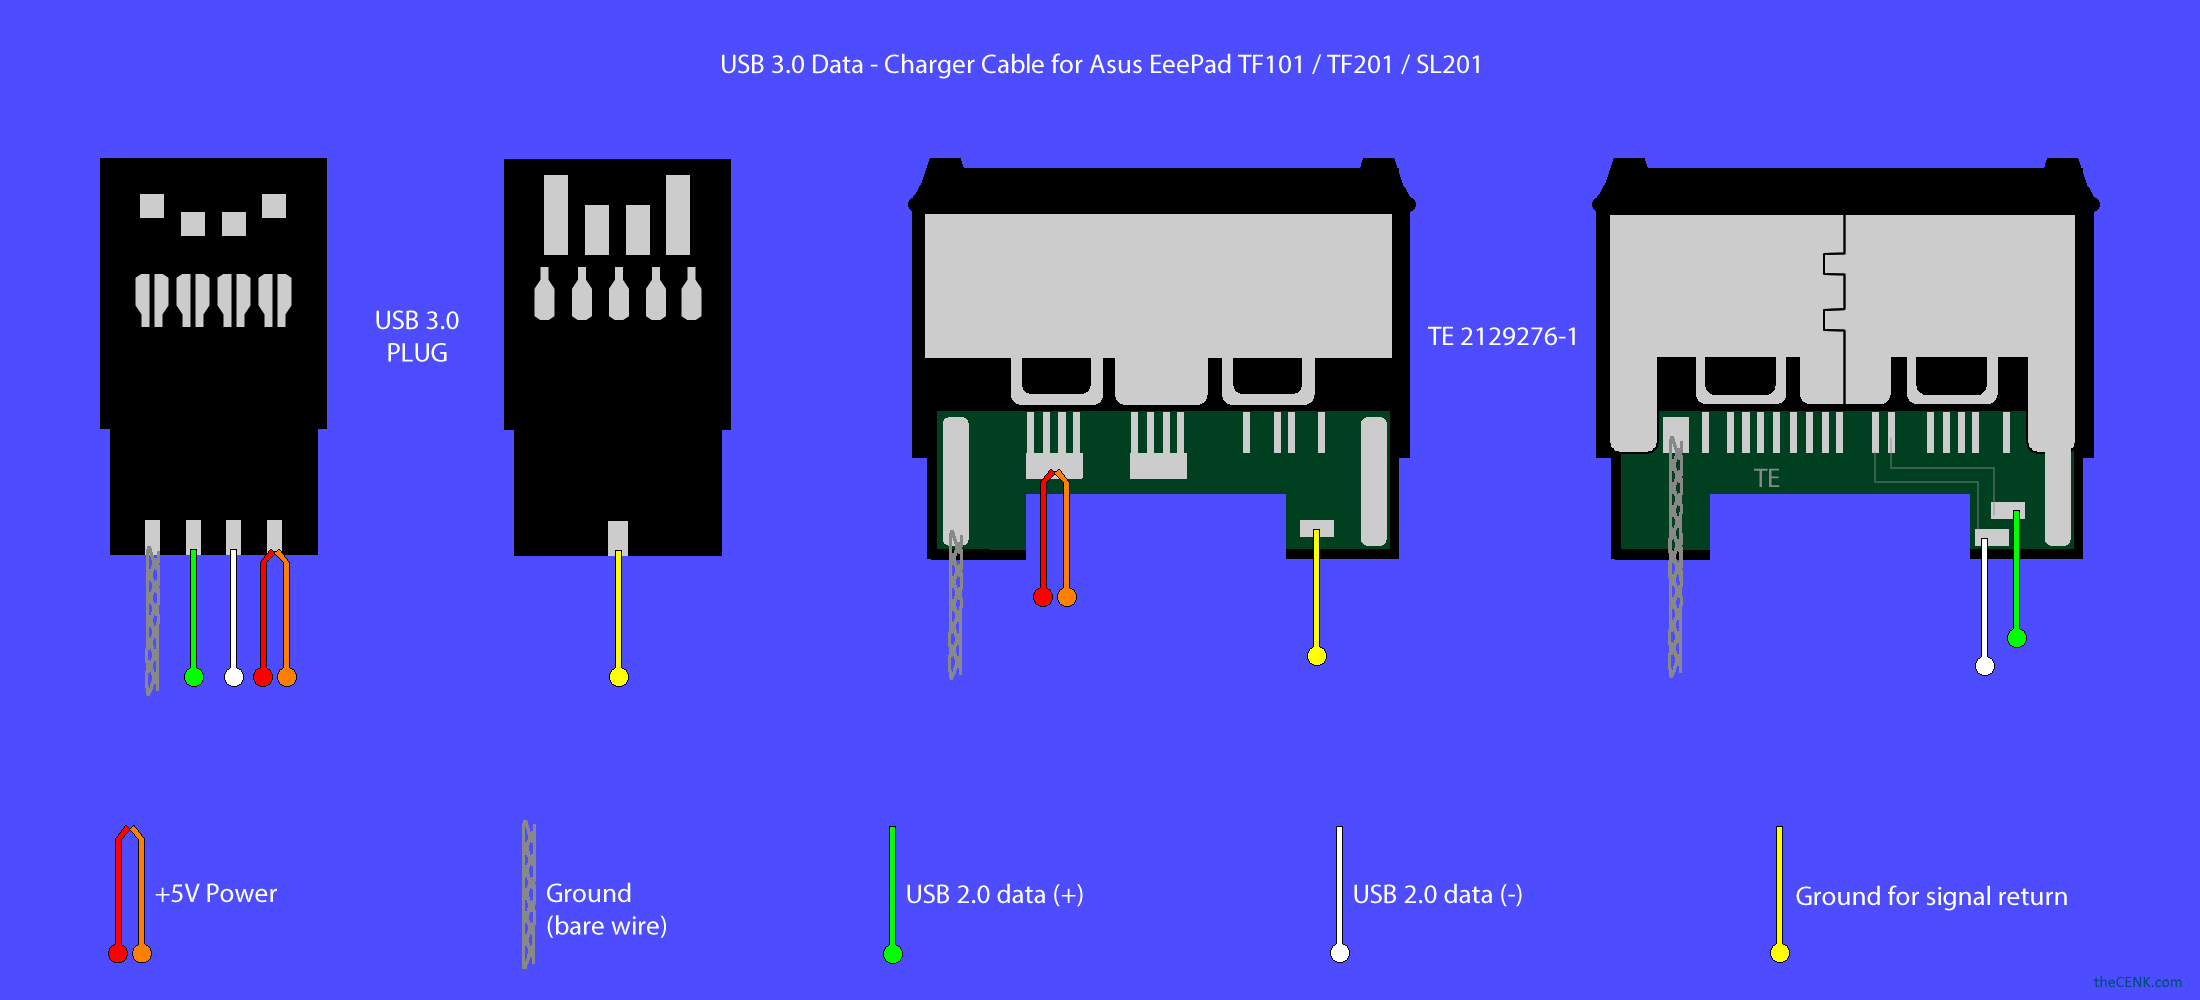 Usb 3.0 Data – Charger Cable For Asus Eeepad Tf101 / Tf201 / Sl201 - Usb Charging Cable Wiring Diagram